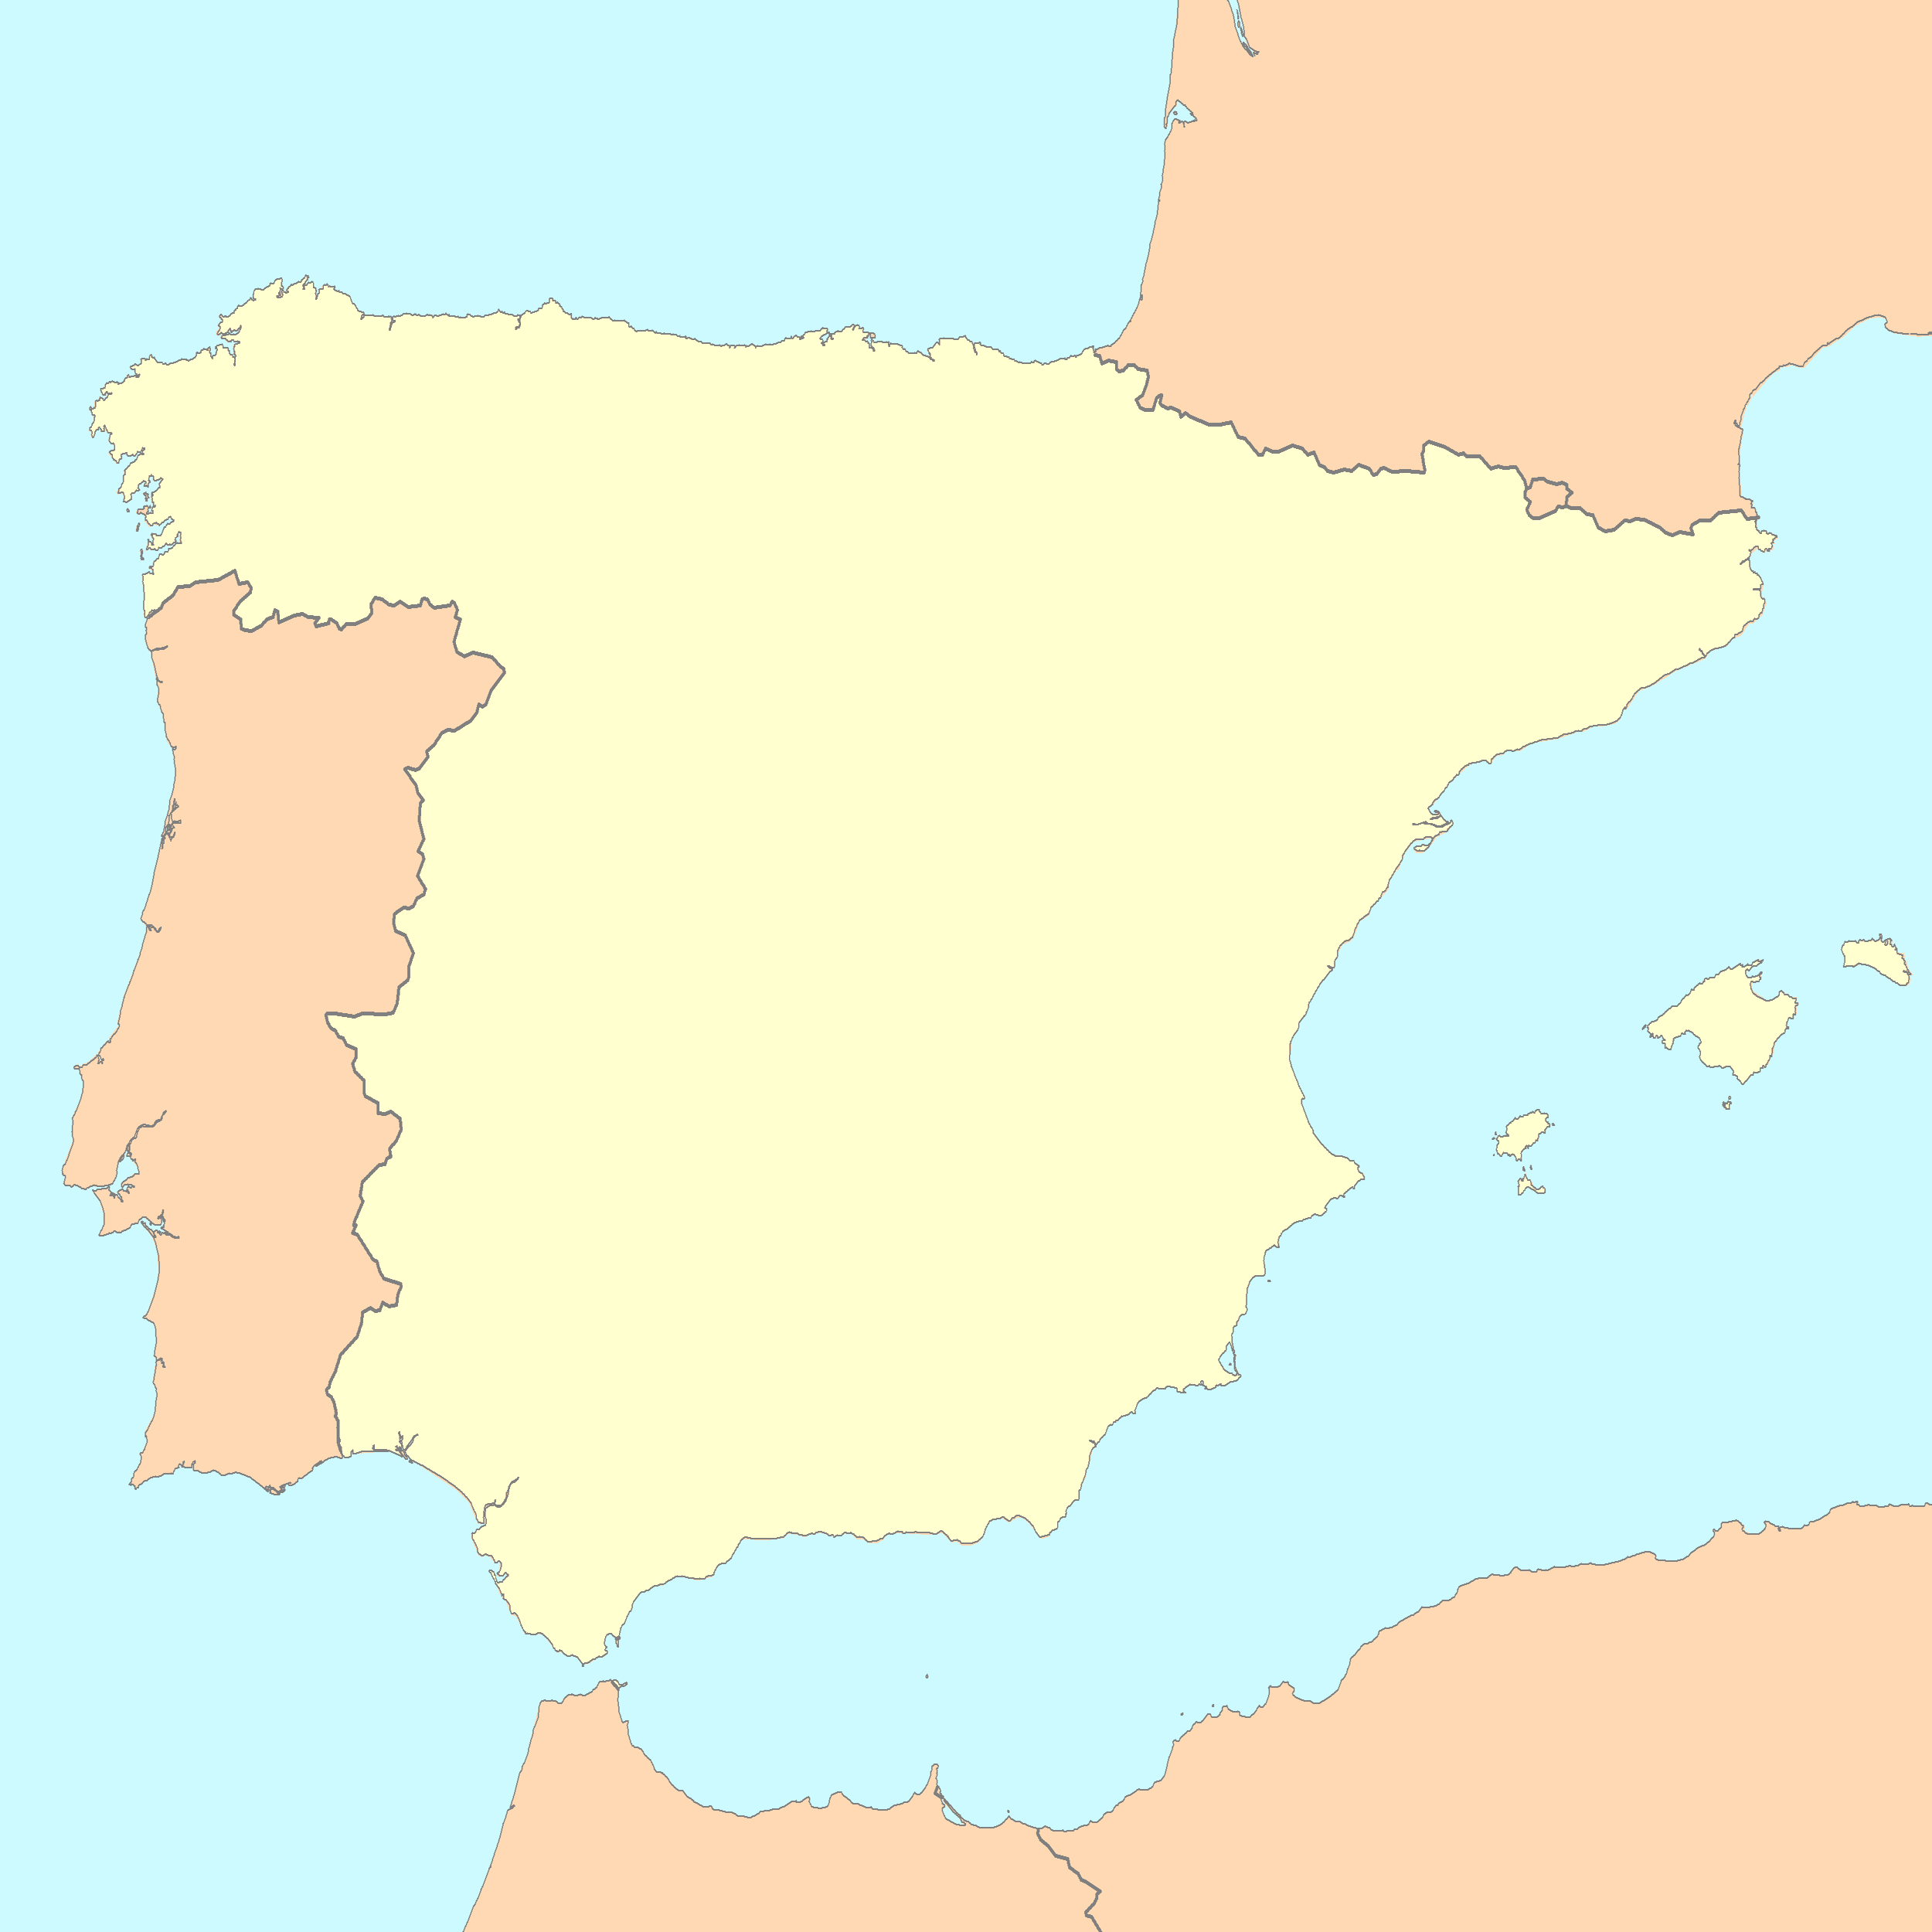 Free Printable Map Of Spain.File Spain Map Blank Png Wikimedia Commons